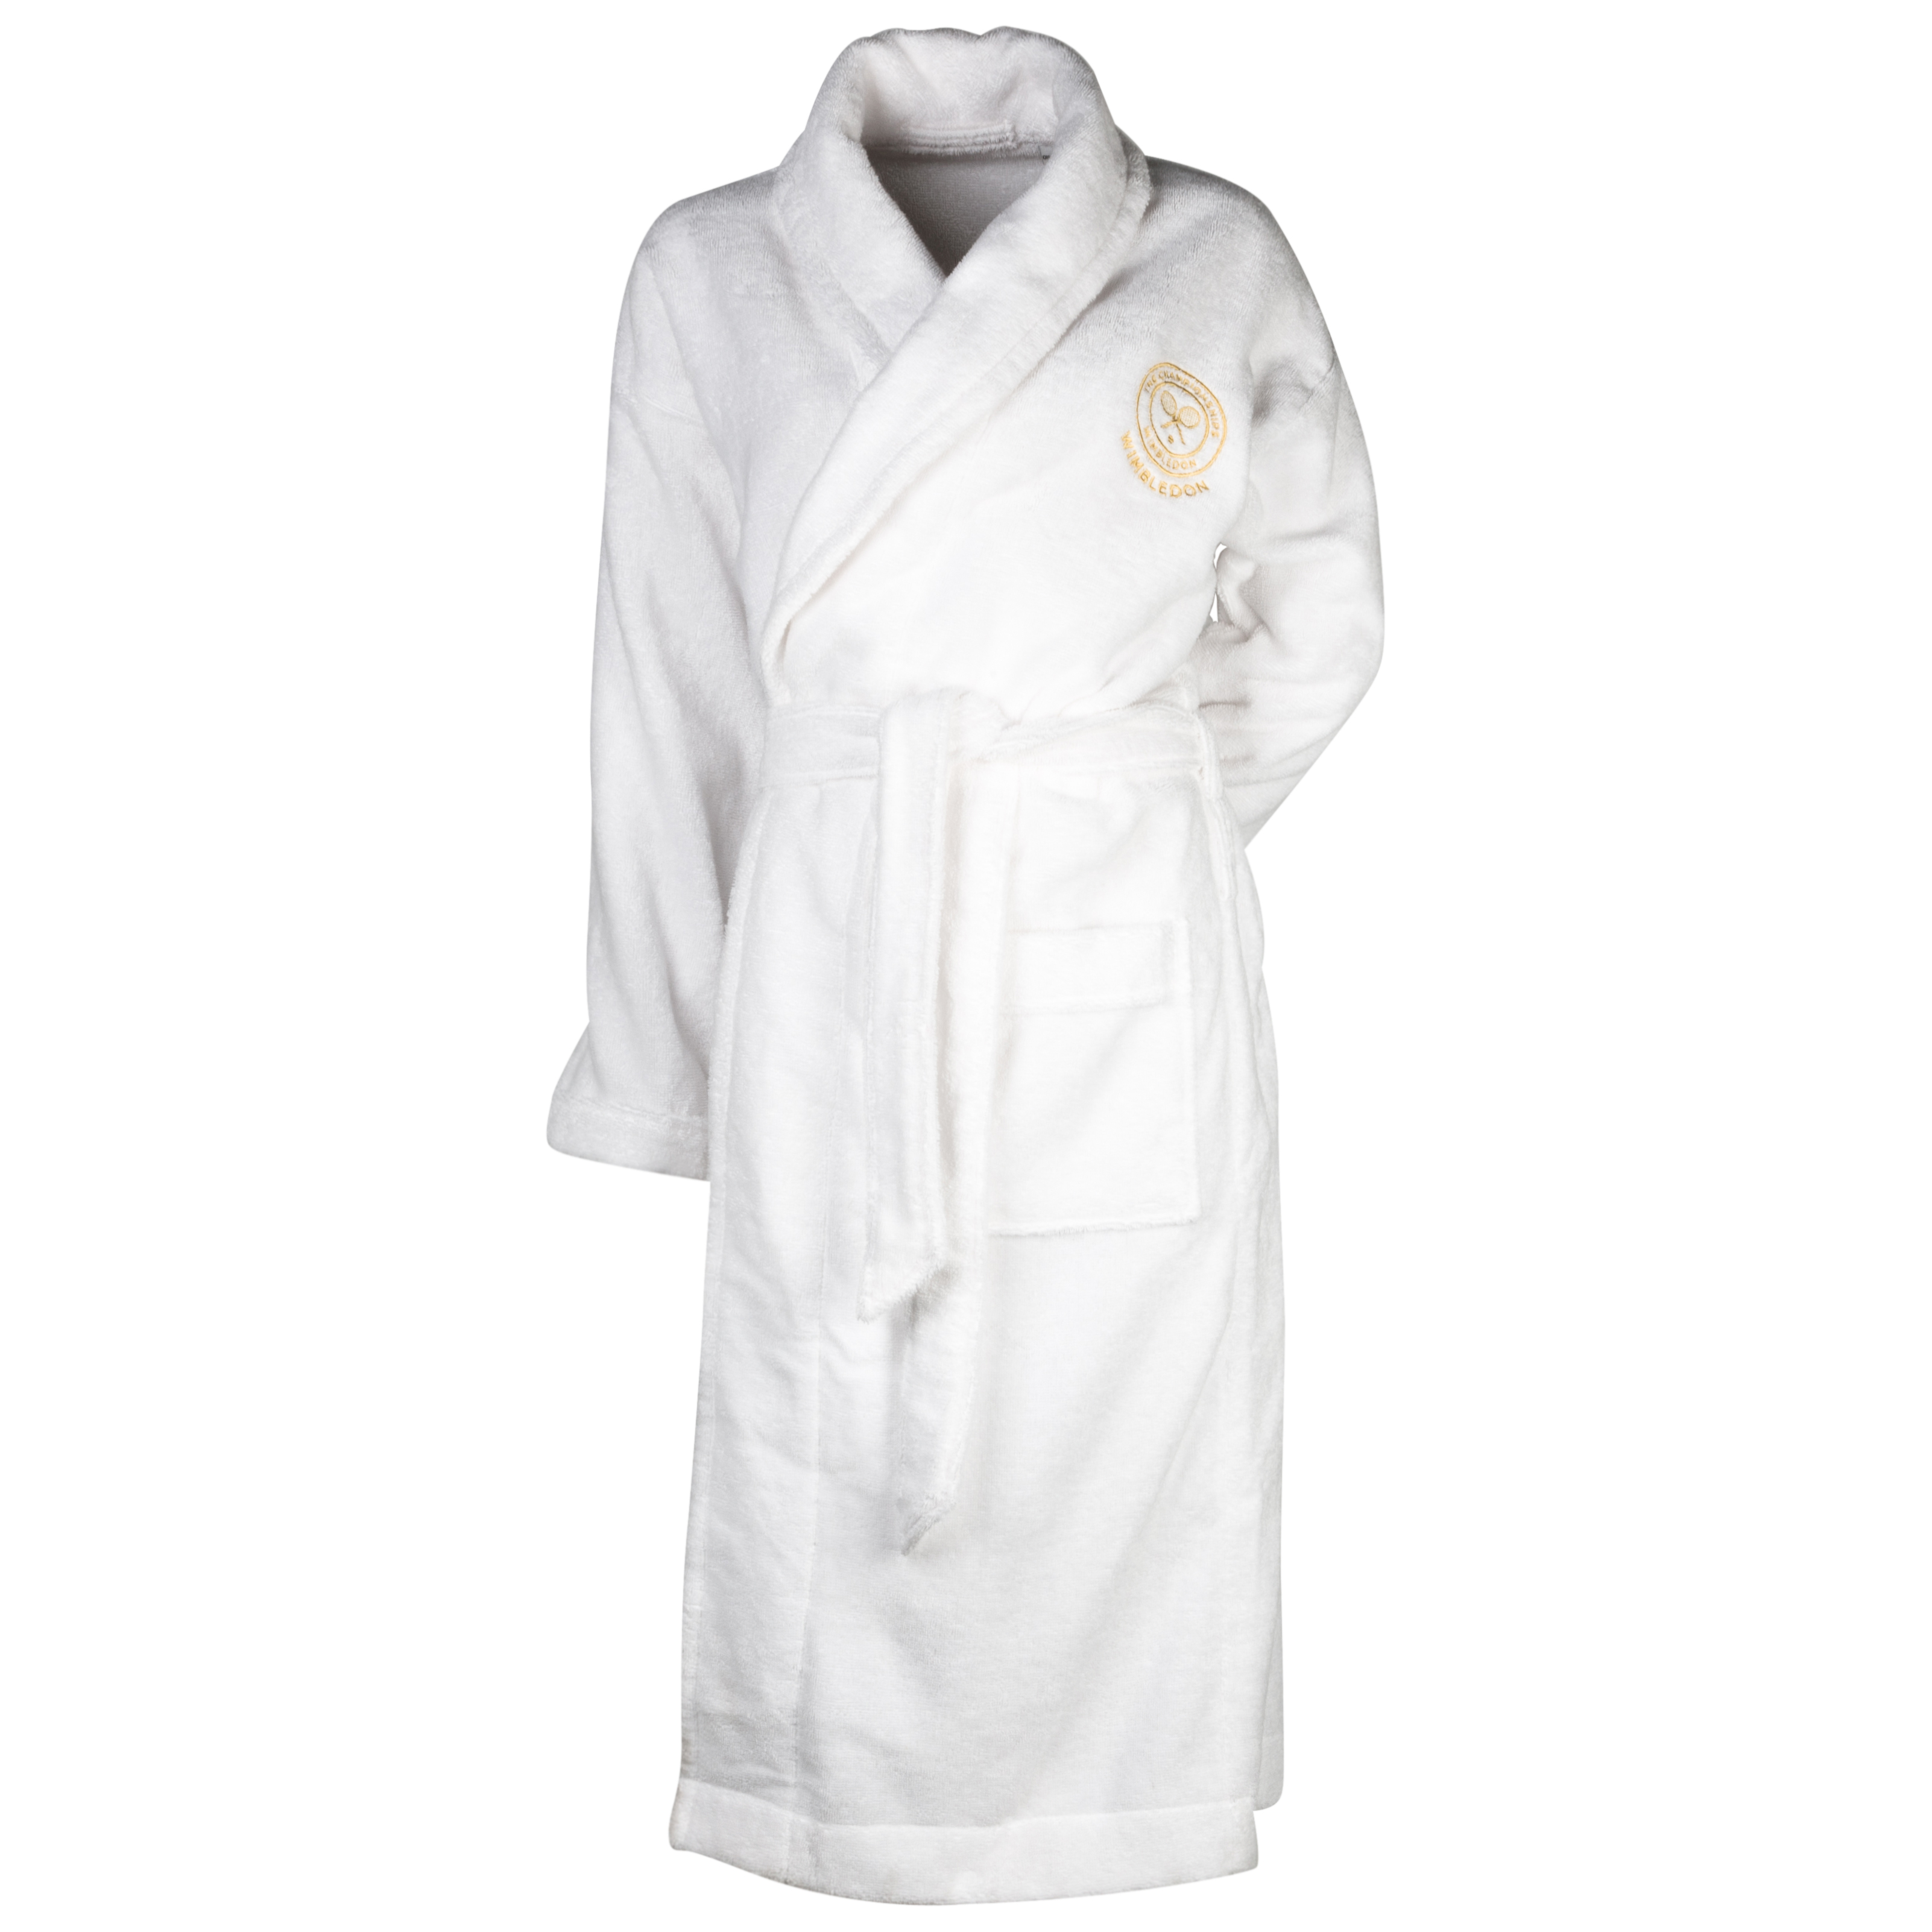 Wimbledon Ringspun Cotton Shawl Collar Robe - White - Unisex